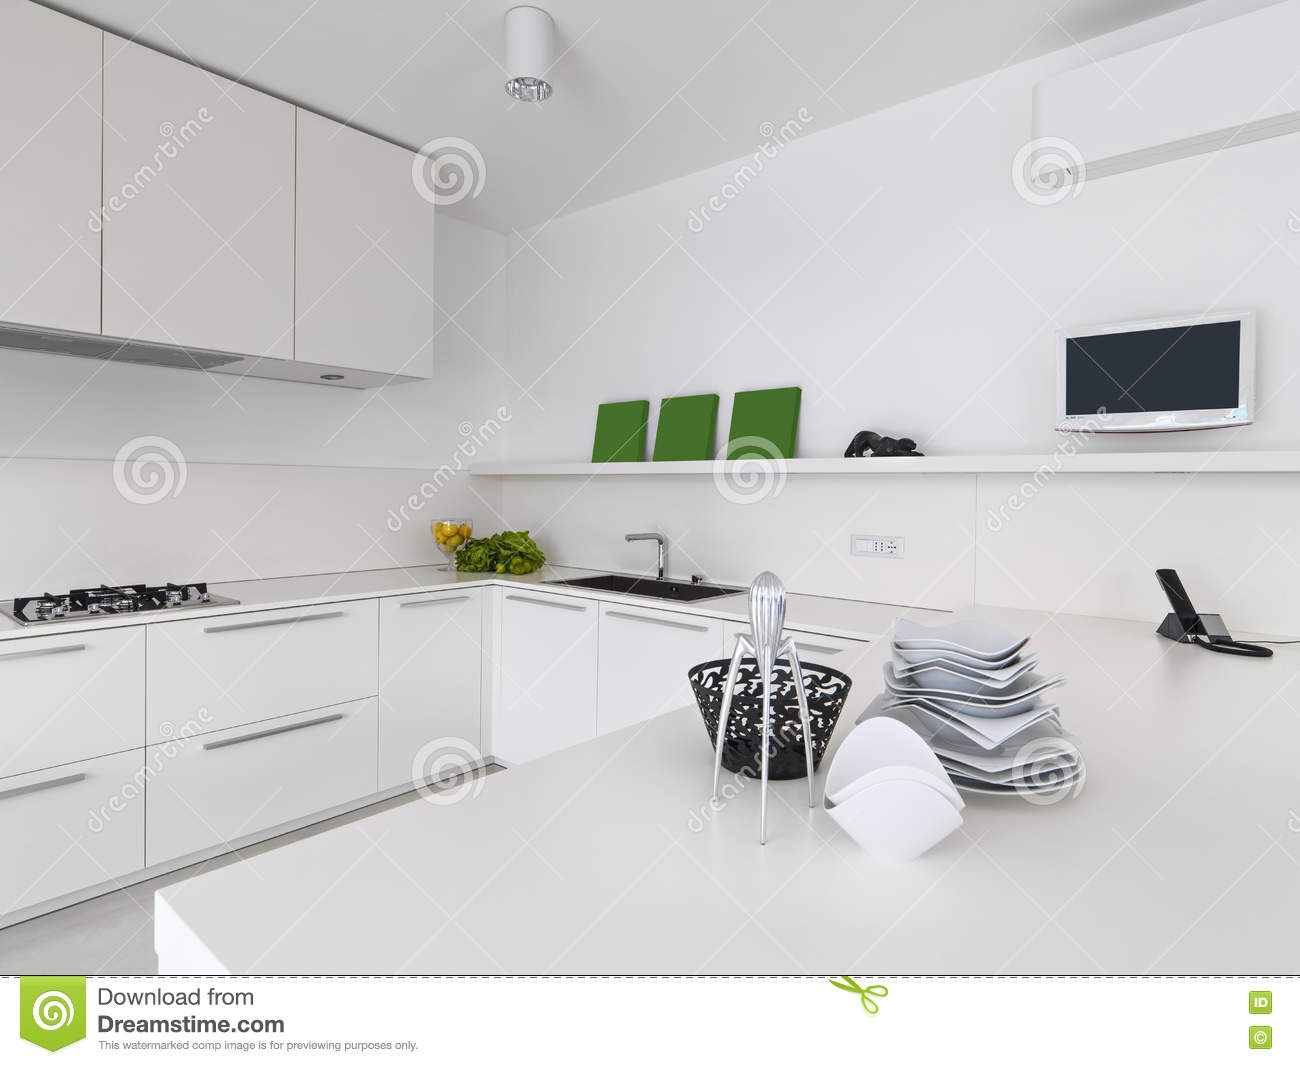 vue int rieure d 39 une cuisine moderne blanche illustration. Black Bedroom Furniture Sets. Home Design Ideas